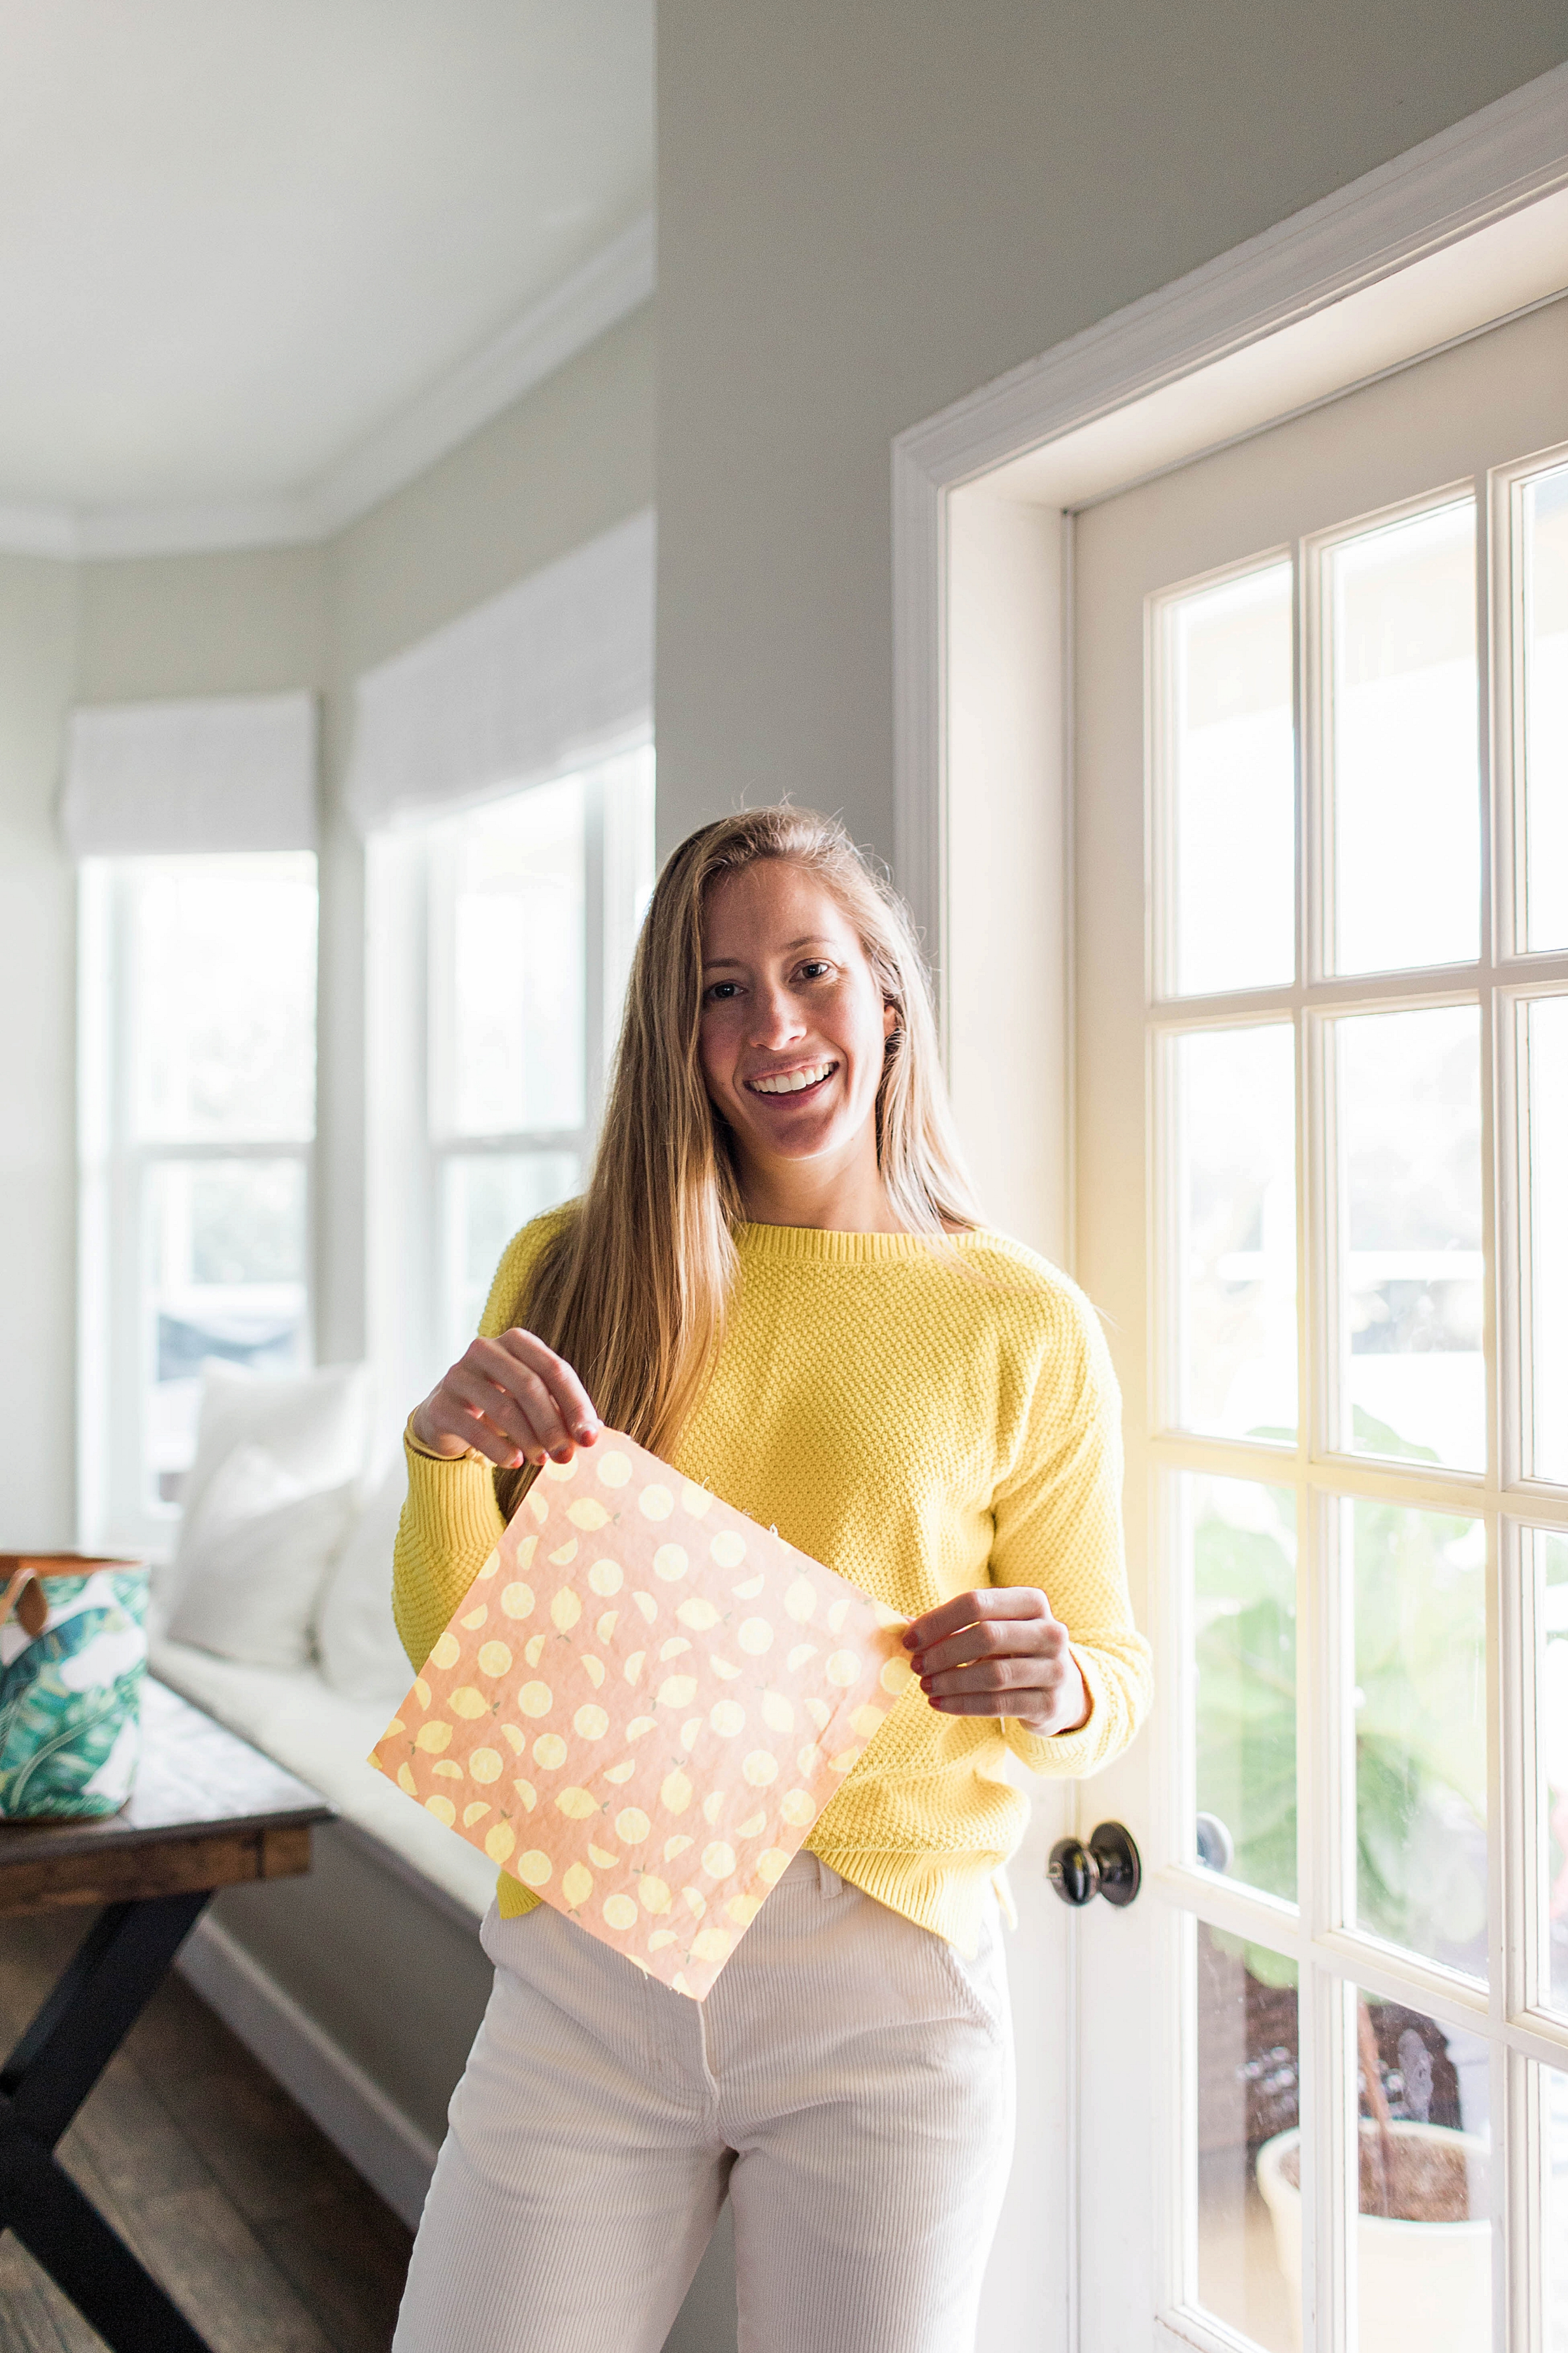 How to Make Reusable Beeswax Food Wraps / How to Make Your Own DIY Beeswax Wraps / Sustainable Living / How to Style a Yellow Sweater / How to Wear White Pants / Winter Outfit Idea - Sunshine Style, Florida Fashion and Lifestyle Blog